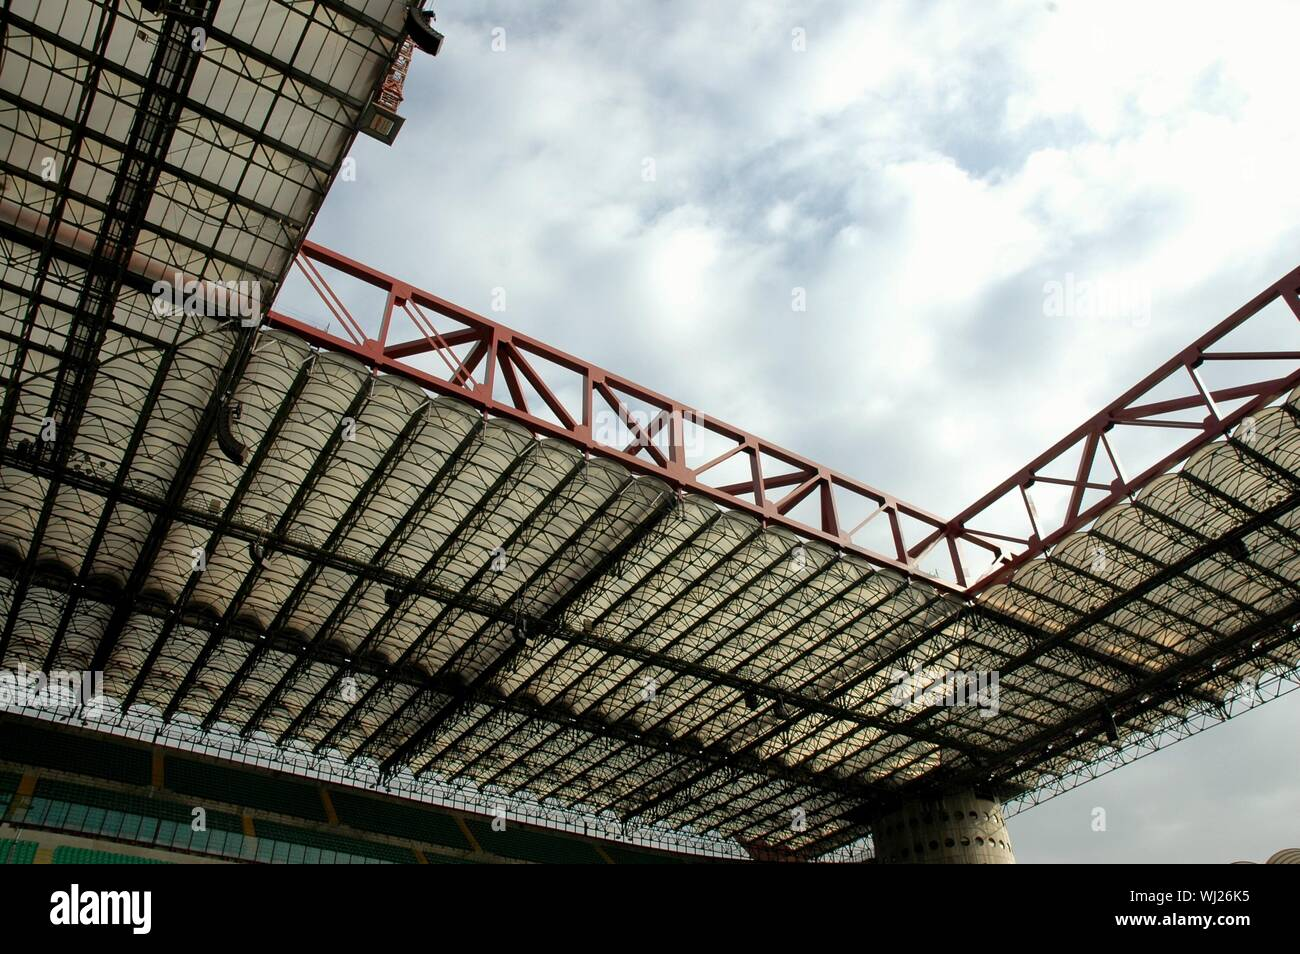 Low Angle View Of San Siro Stadium Against Sky In City Stock Photo